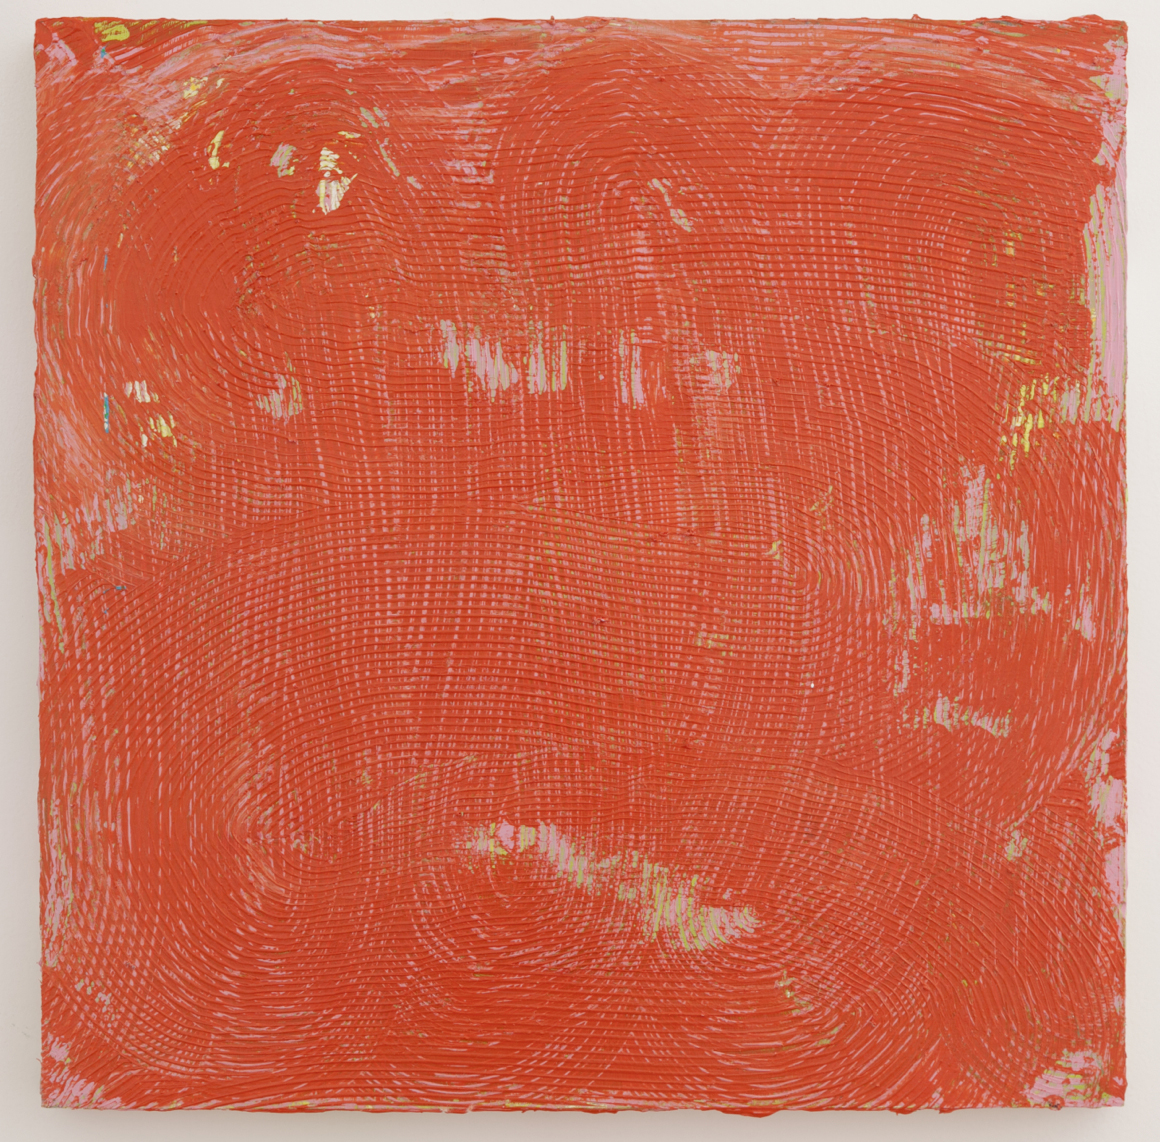 "<p><span class=""name"">Adam Bateman</span><br><em>Orange</em><span class='media'>acrylic and spray paint on panel</span>24 x 24in<br>2014<br><a class='inquire' href='mailto:info@gildargallery.com?subject=Artwork Inquiry ABAT0004&body=I am interested in finding out more about Orange by Adam Bateman'>Inquire</a></p>"